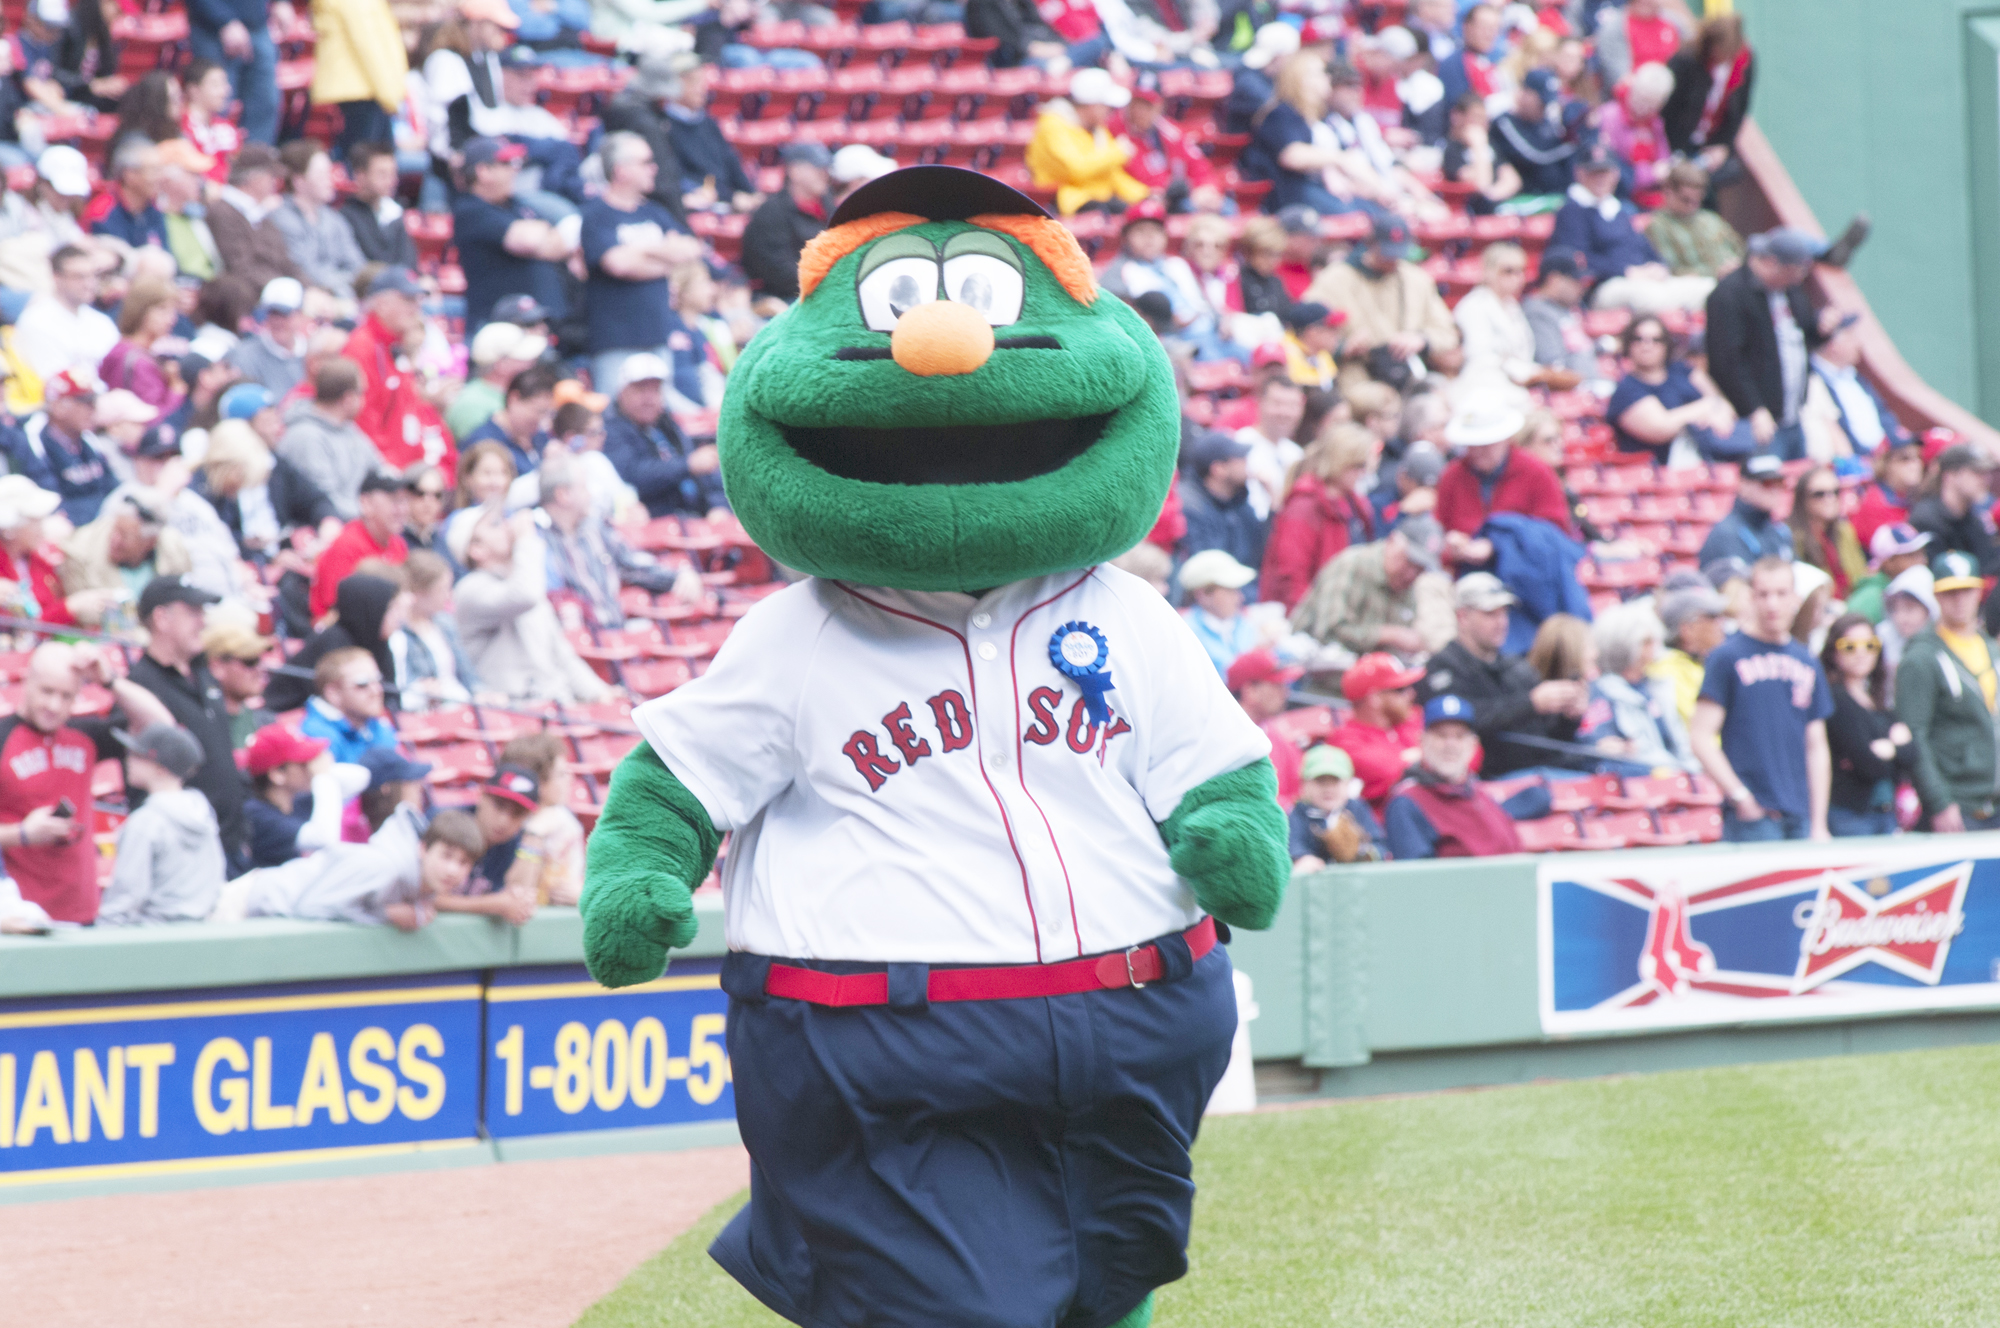 Wally the Green Monster mascot at Fenway Park